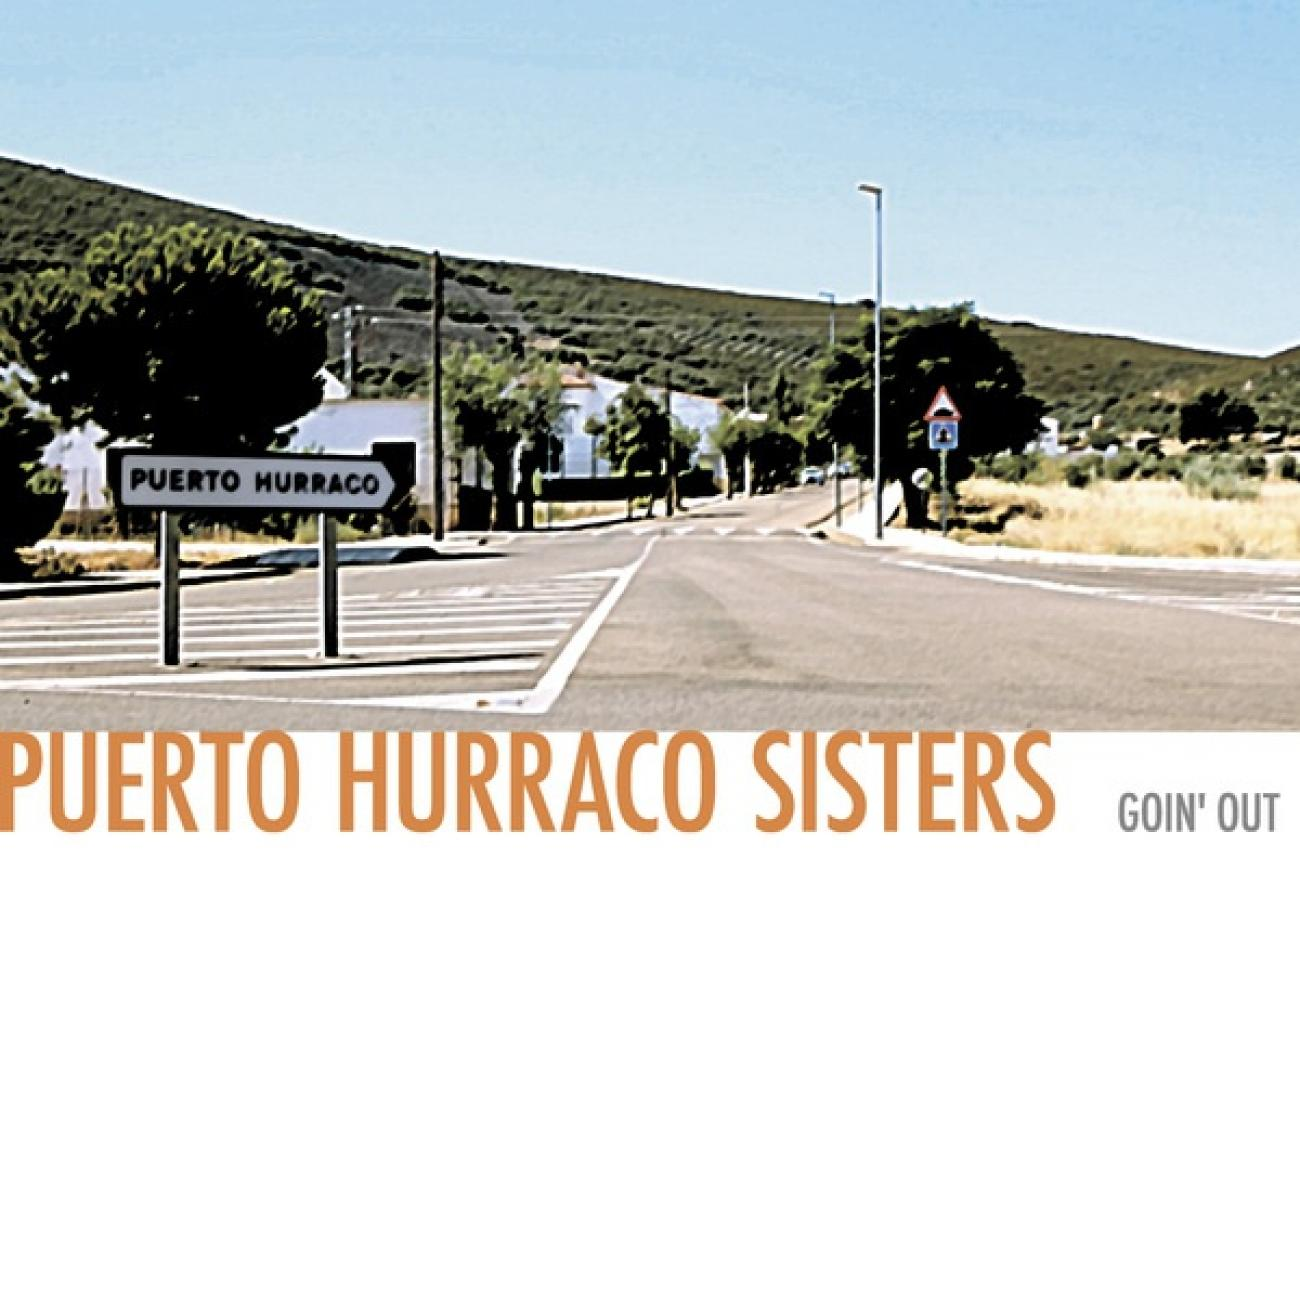 Puerto Hurraco Sisters - Goin' out